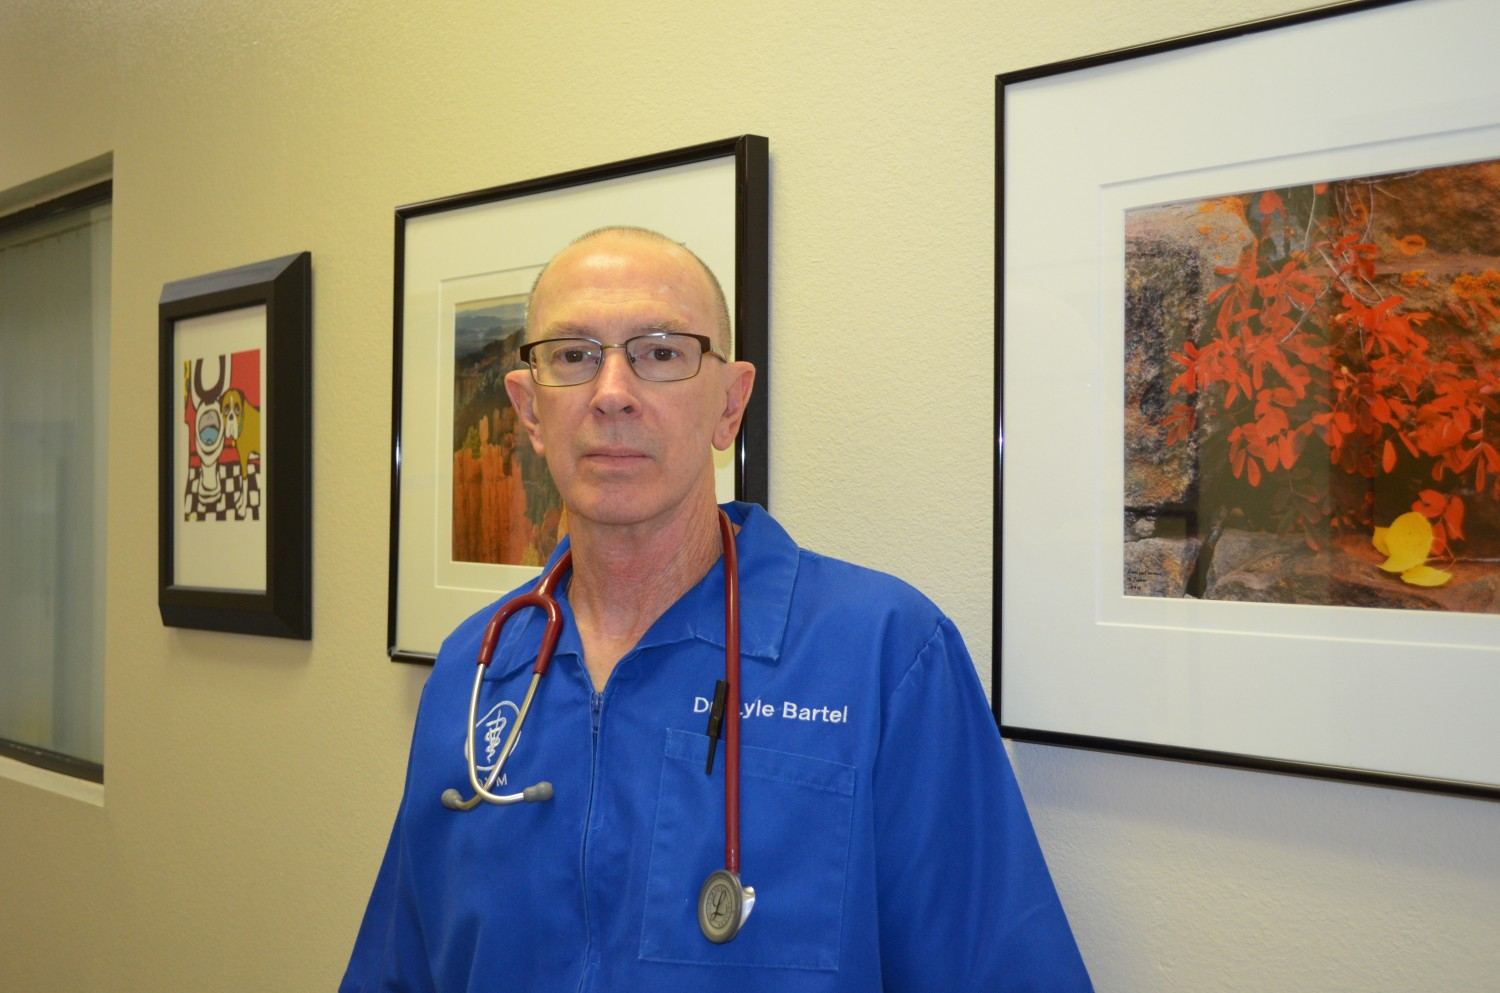 Dr.Lyle Bartel at Ahwatukee Animal Care Hospital and Pet resort